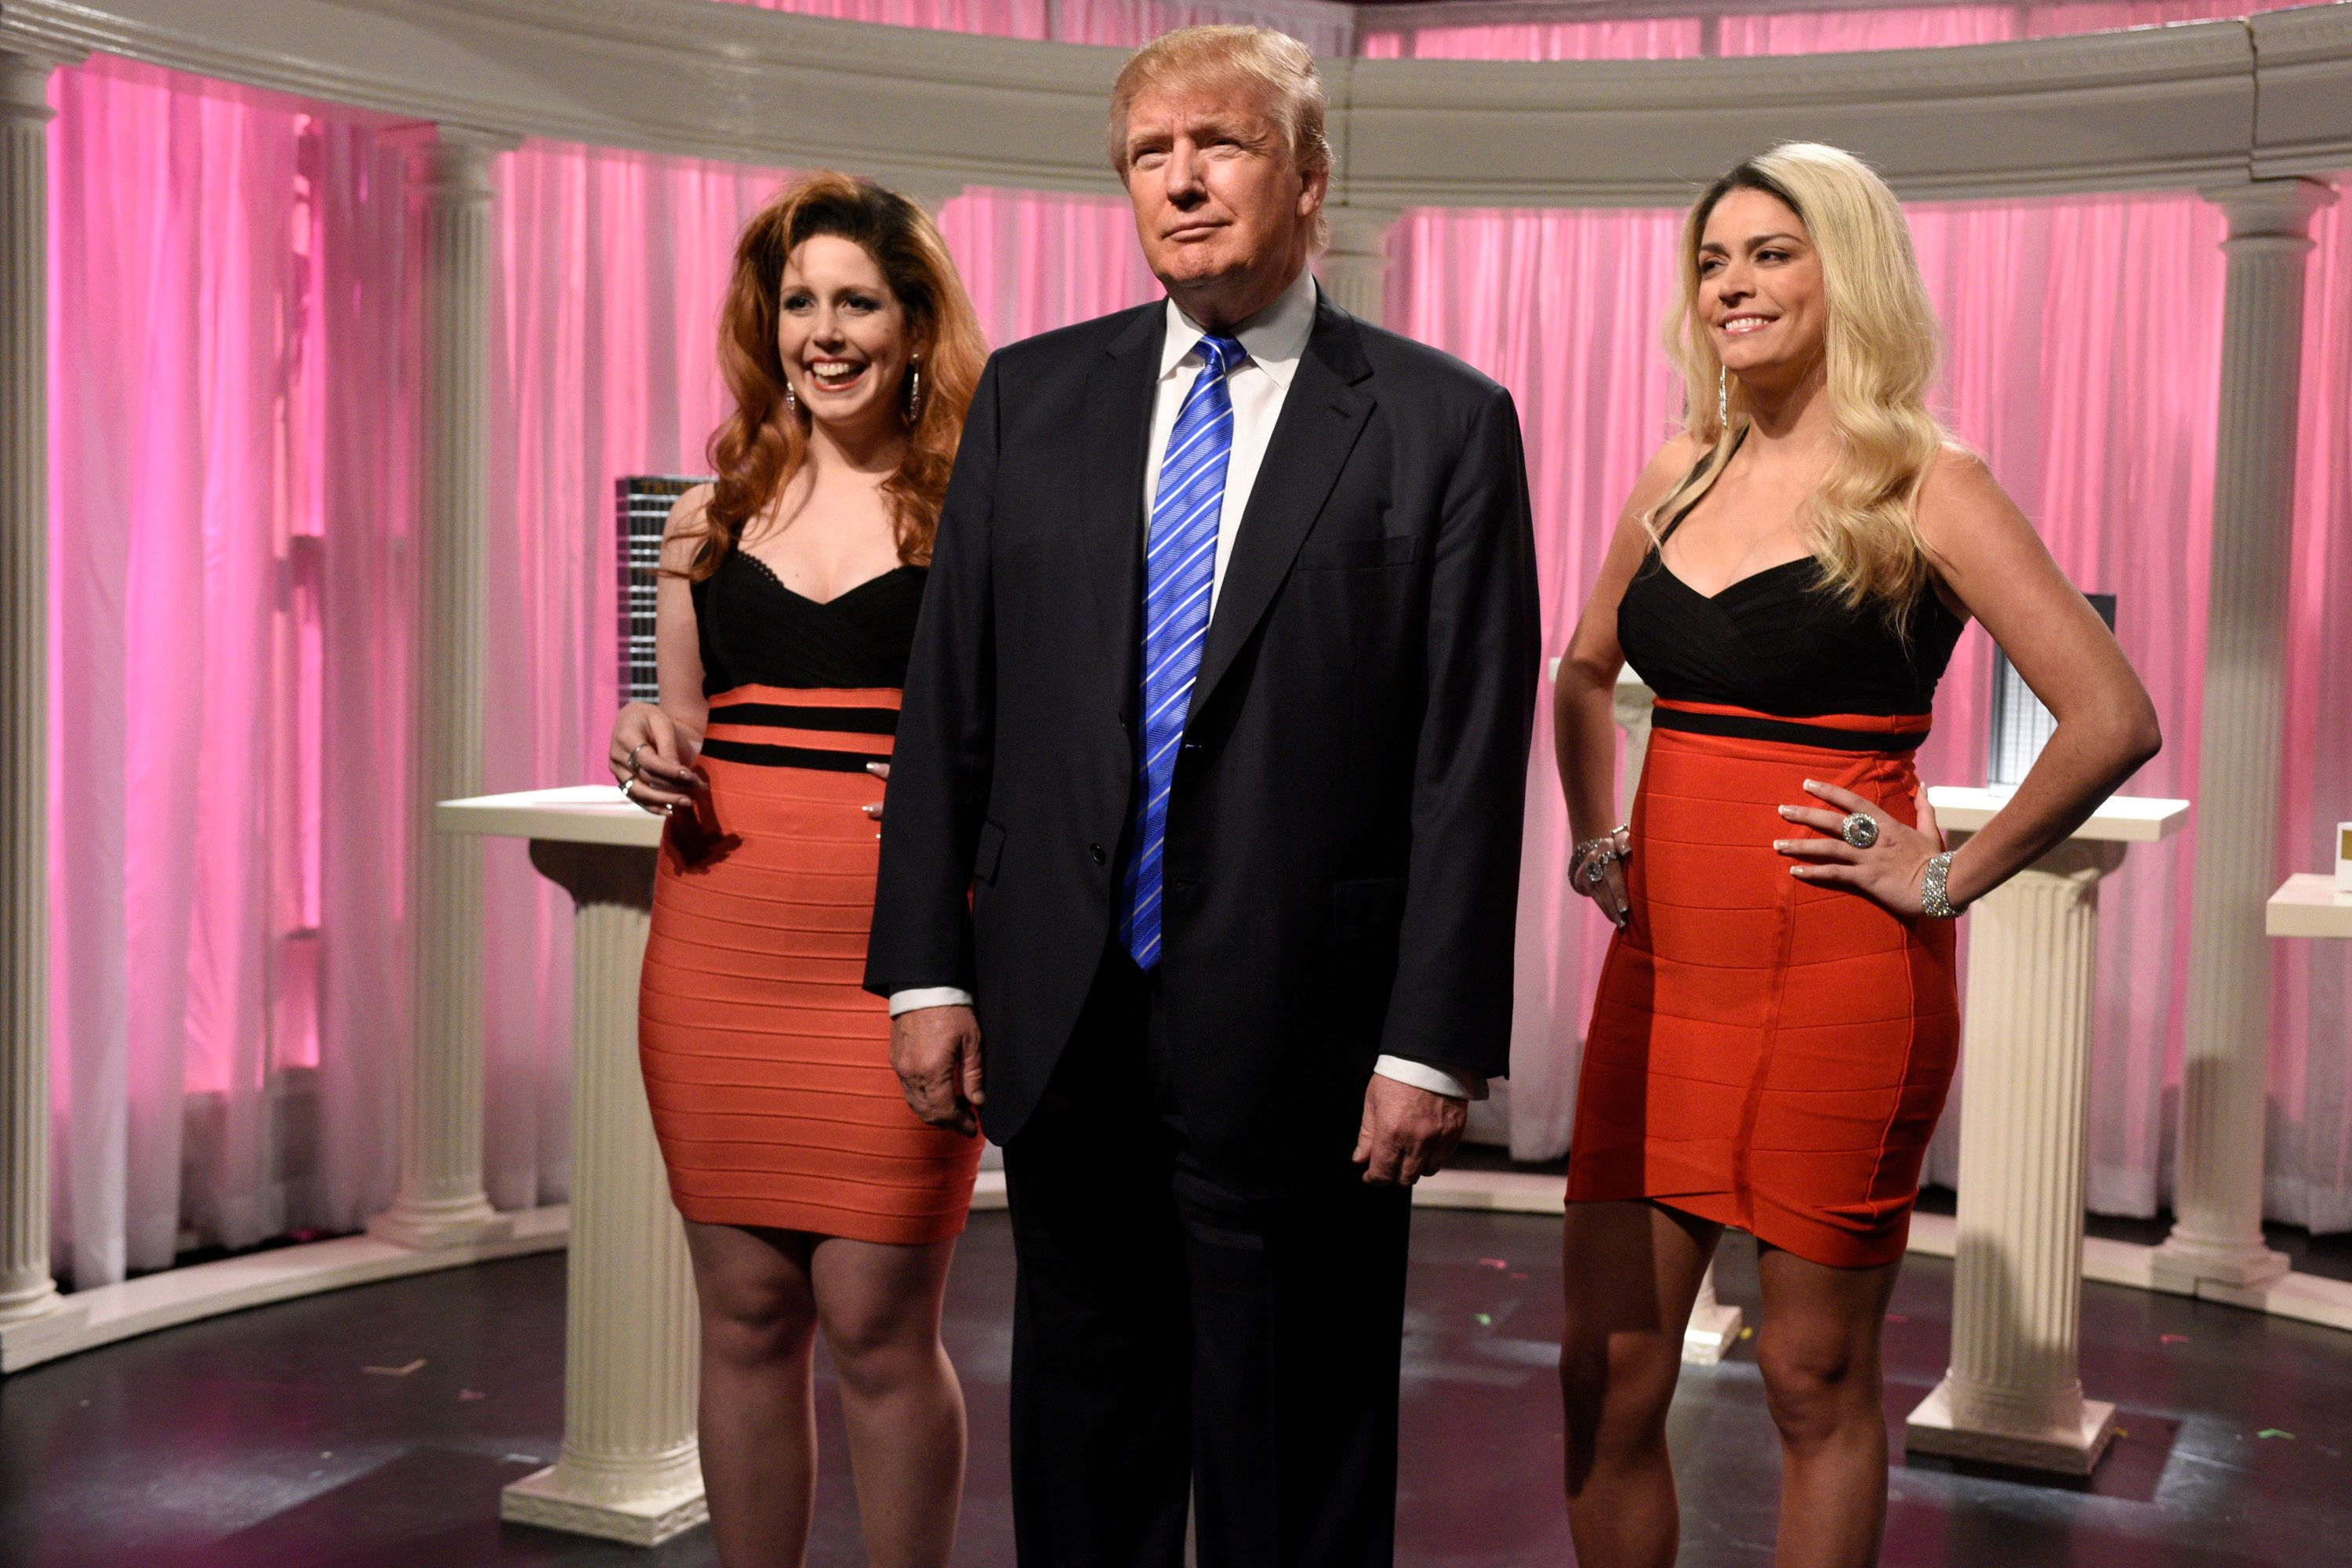 SATURDAY NIGHT LIVE -- 'Donald Trump' Episode 1687 -- Pictured: (l-r) Vanessa Bayer, Donald Trump, and Cecily Strong during the 'Porn Stars' sketch on November 7, 2015 -- (Photo by: Dana Edelson/NBC/NBCU Photo Bank via Getty Images)